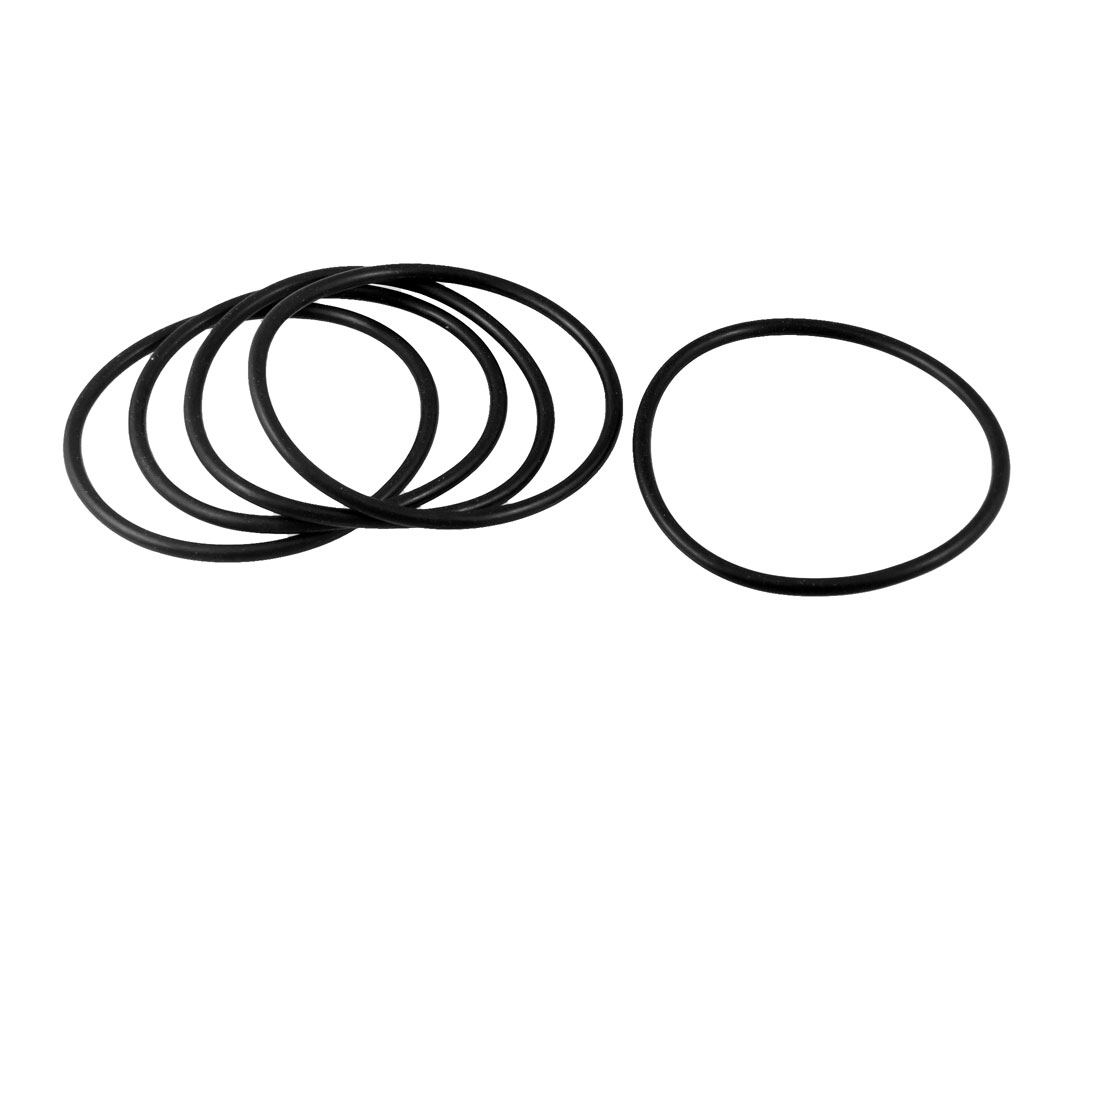 5 Pcs Flexible Rubber Sealing Oil Filter O Rings Gaskets 59mm x 52mm x 3.5mm